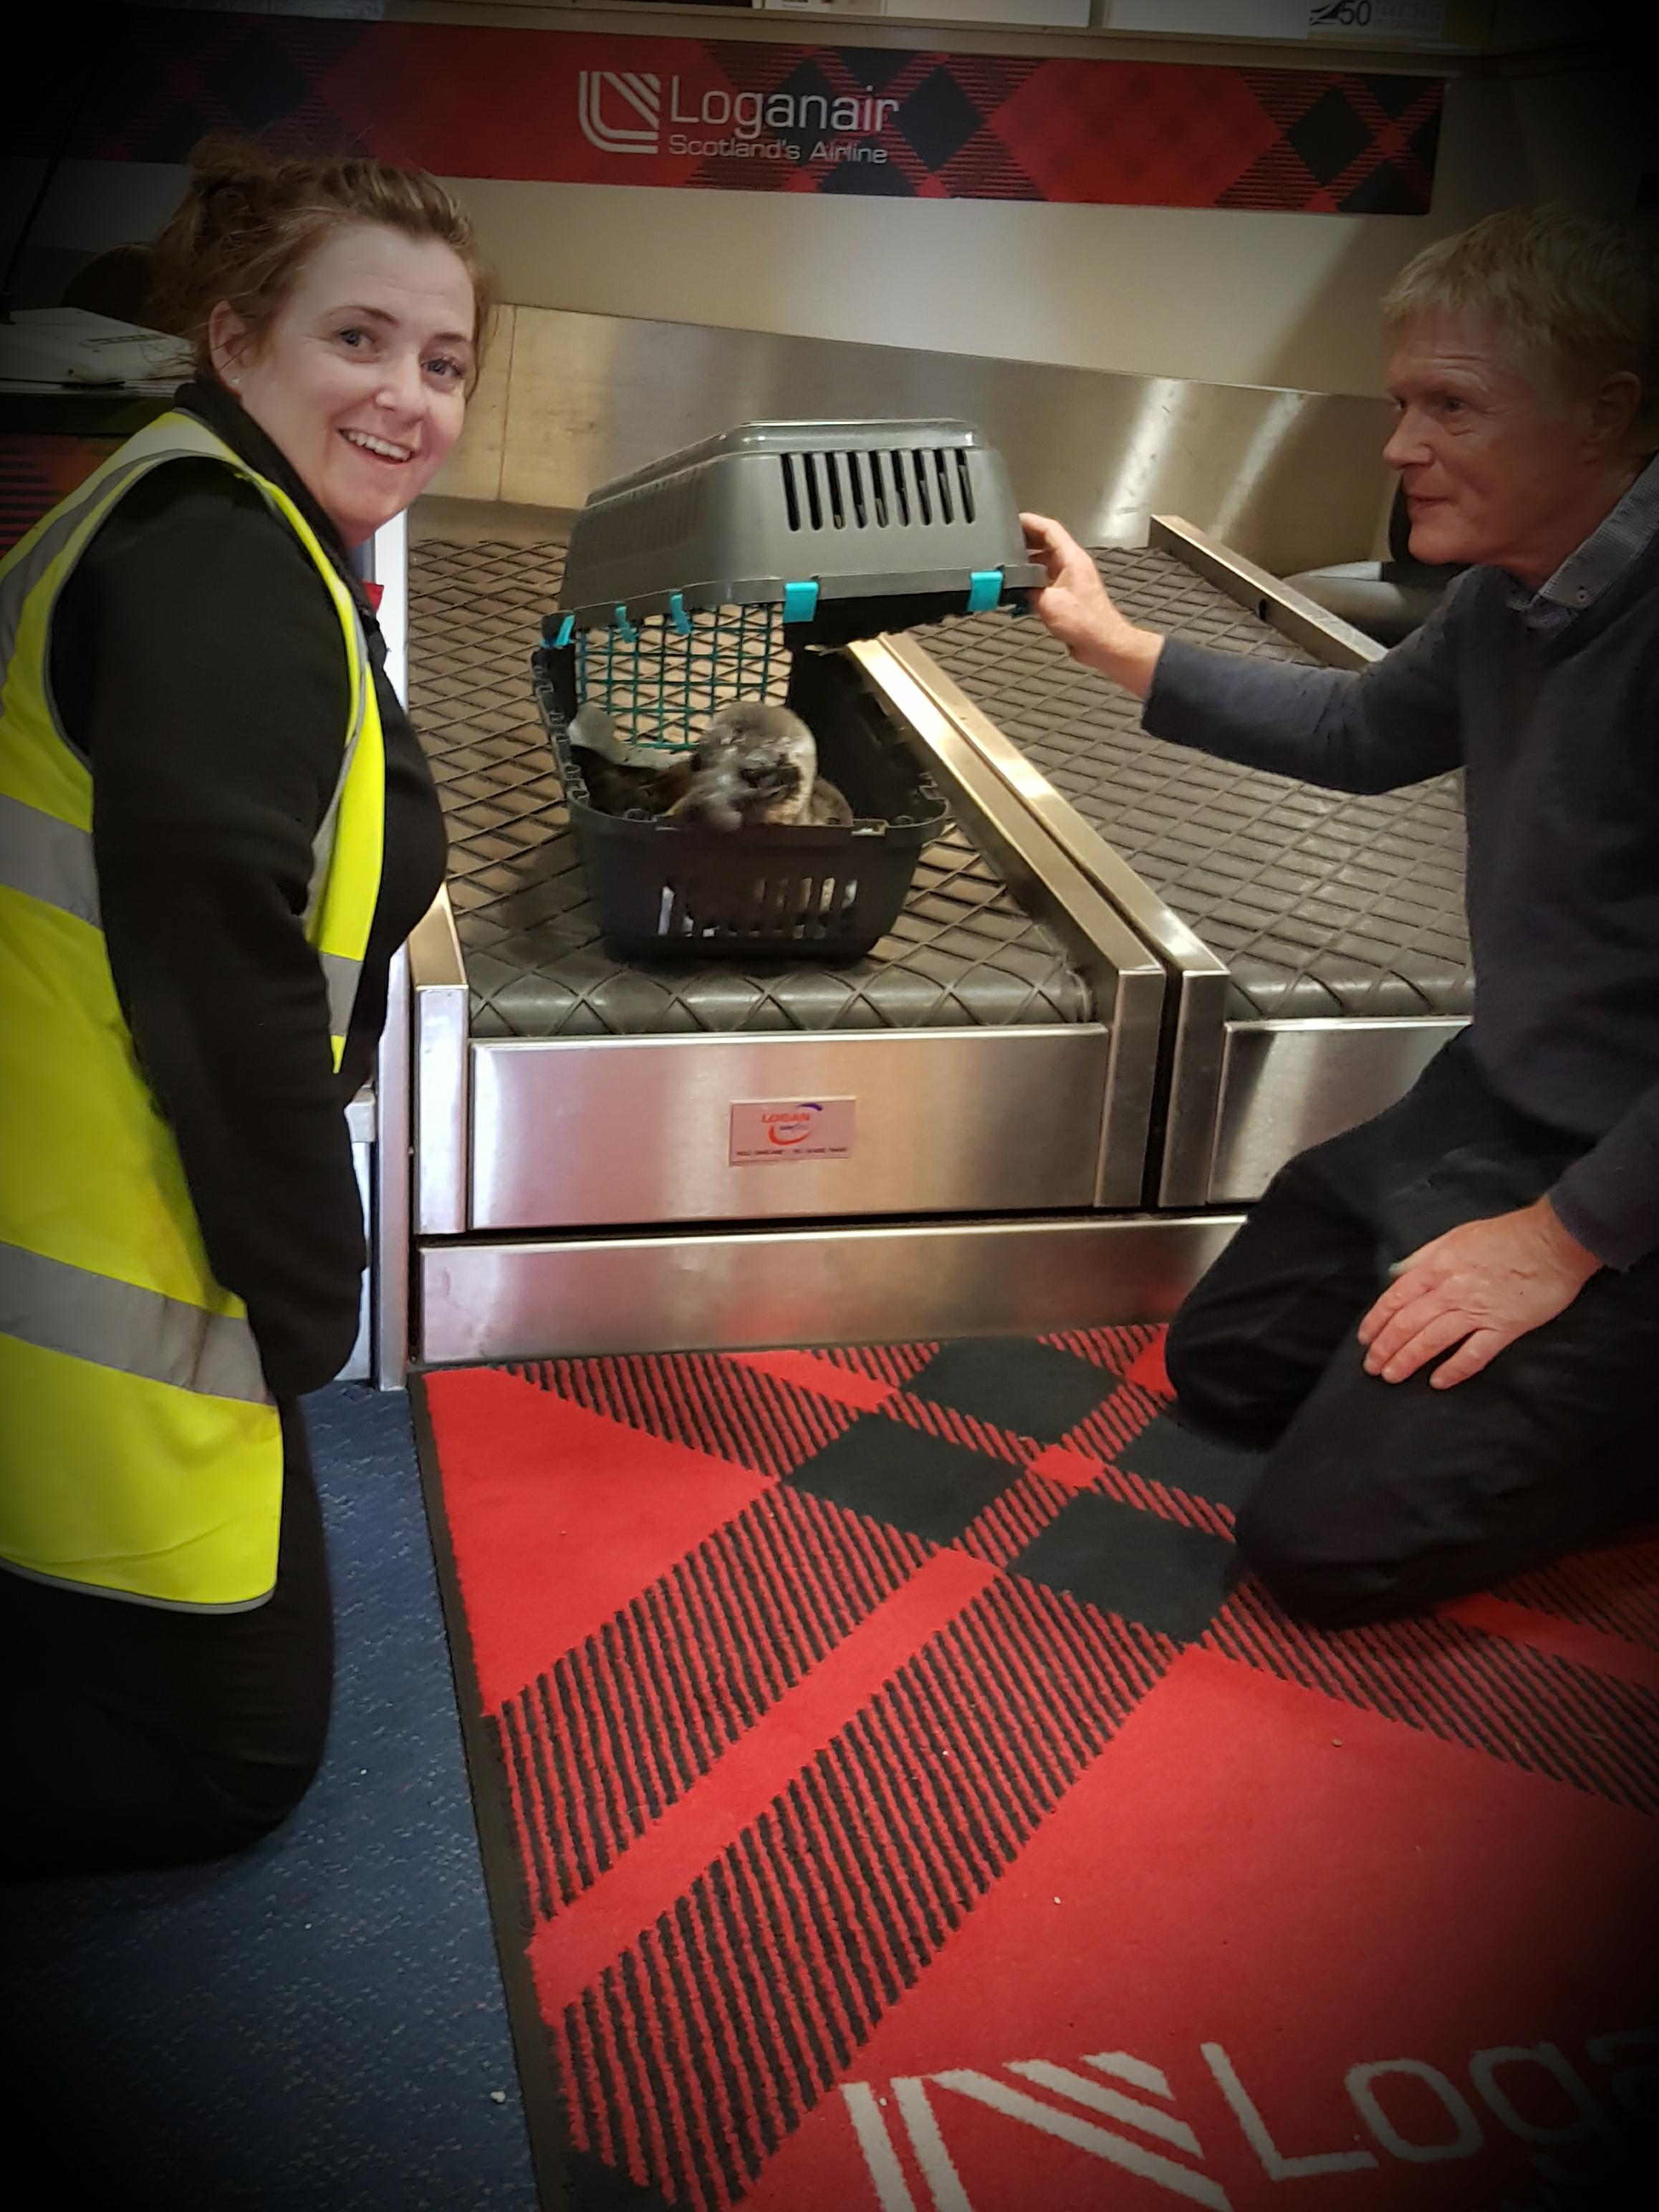 Sharleen McPhee, of Loganair Customer Services, and vet David Buckland prepare the seal for its journey (Loganair/PA)